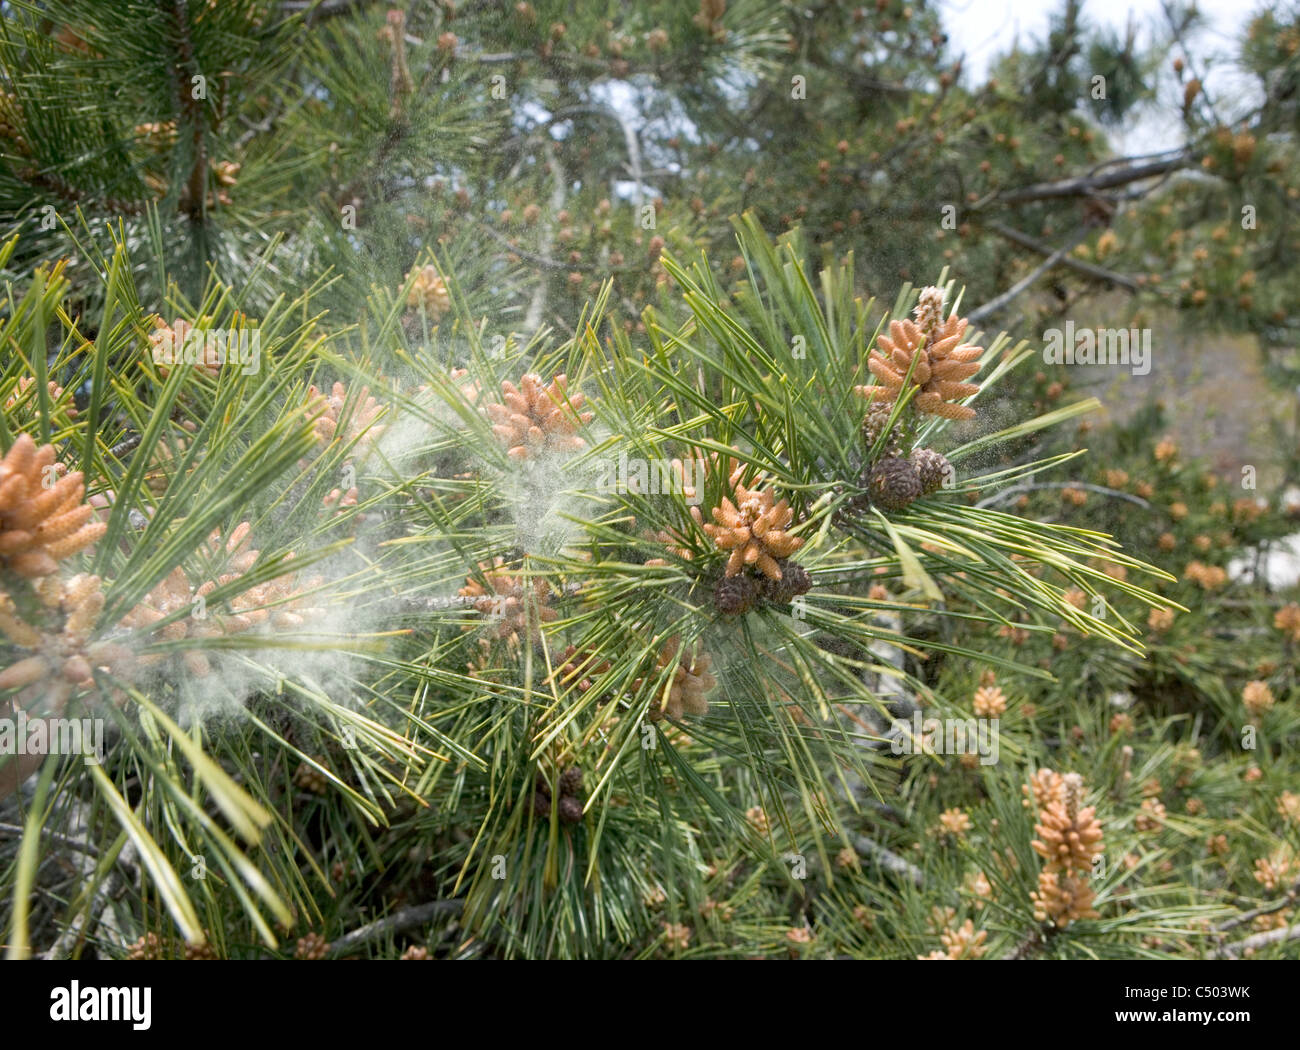 pollen falling from a pine tree in the wind - Stock Image